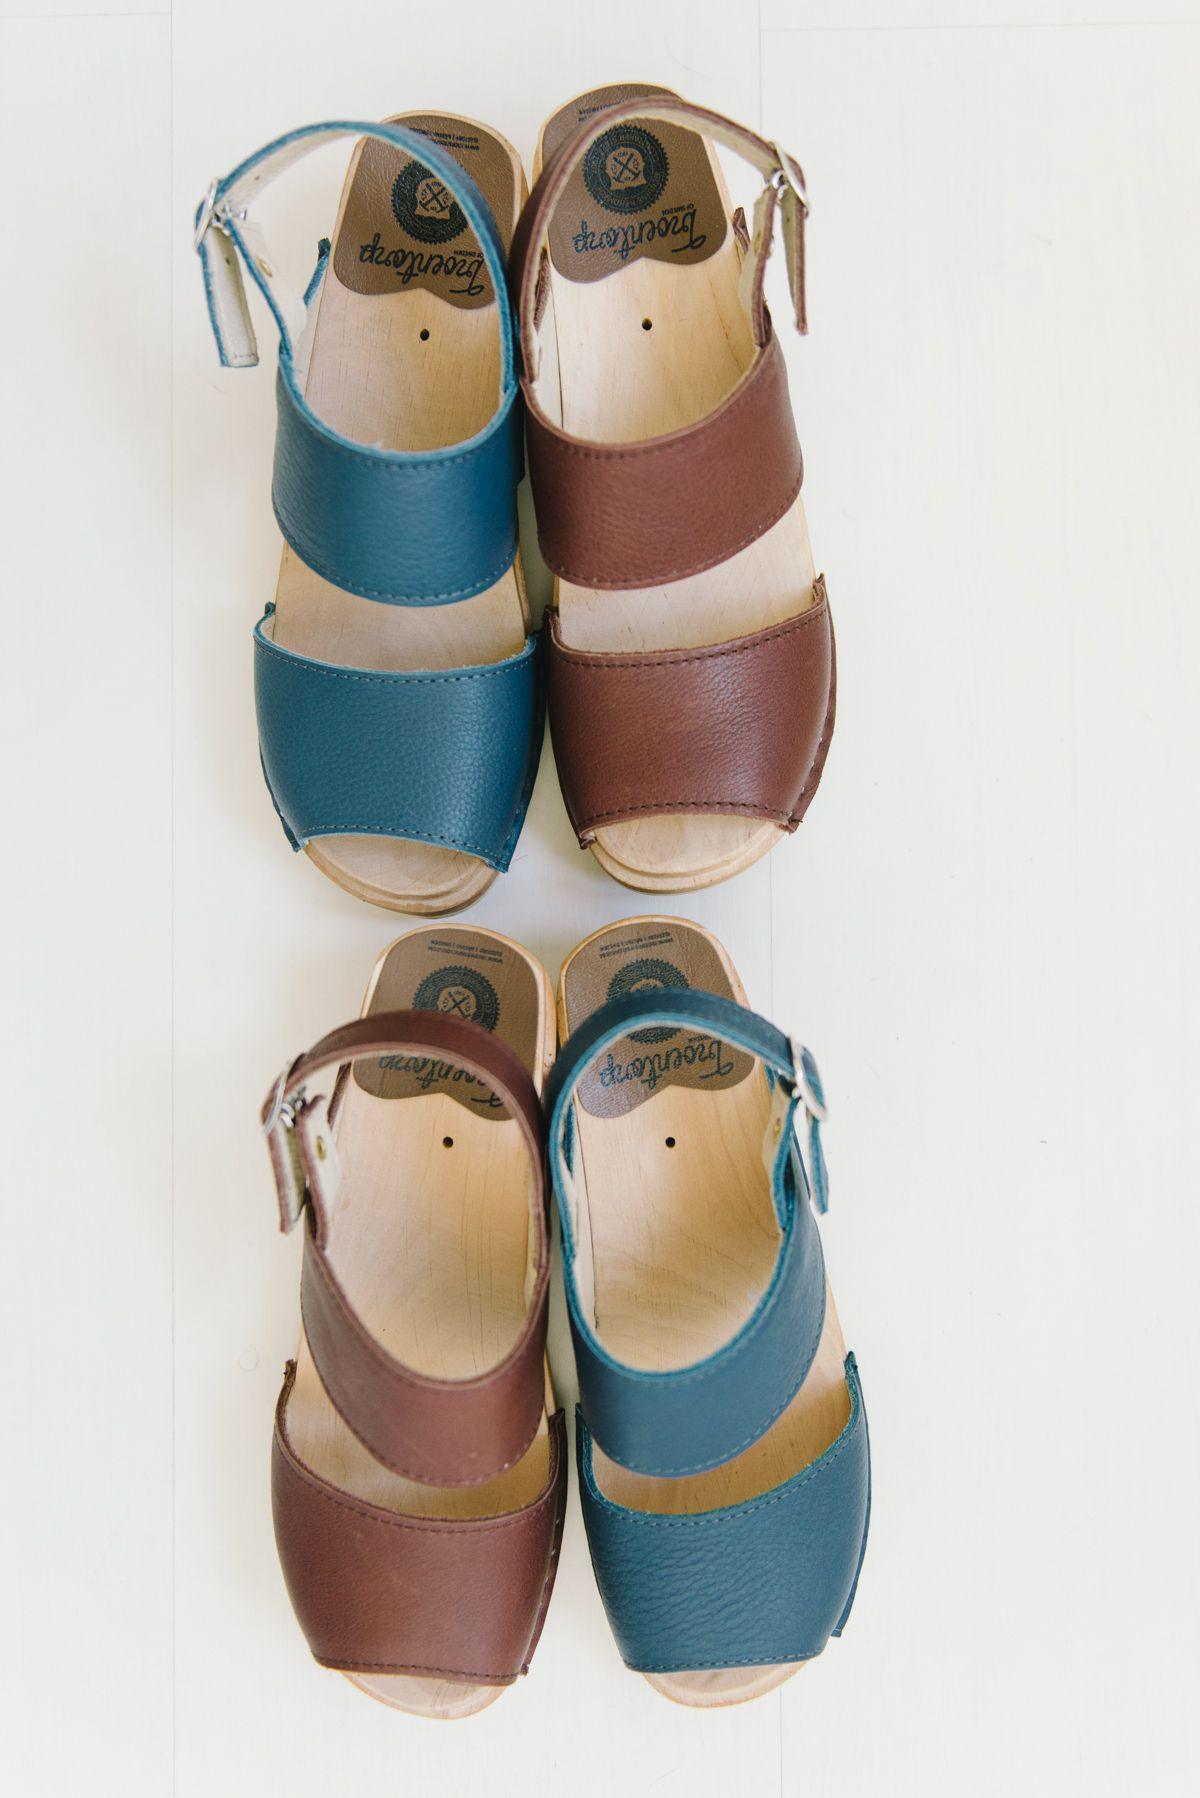 3f3fd847907e Ingrid sandals in brown and blue